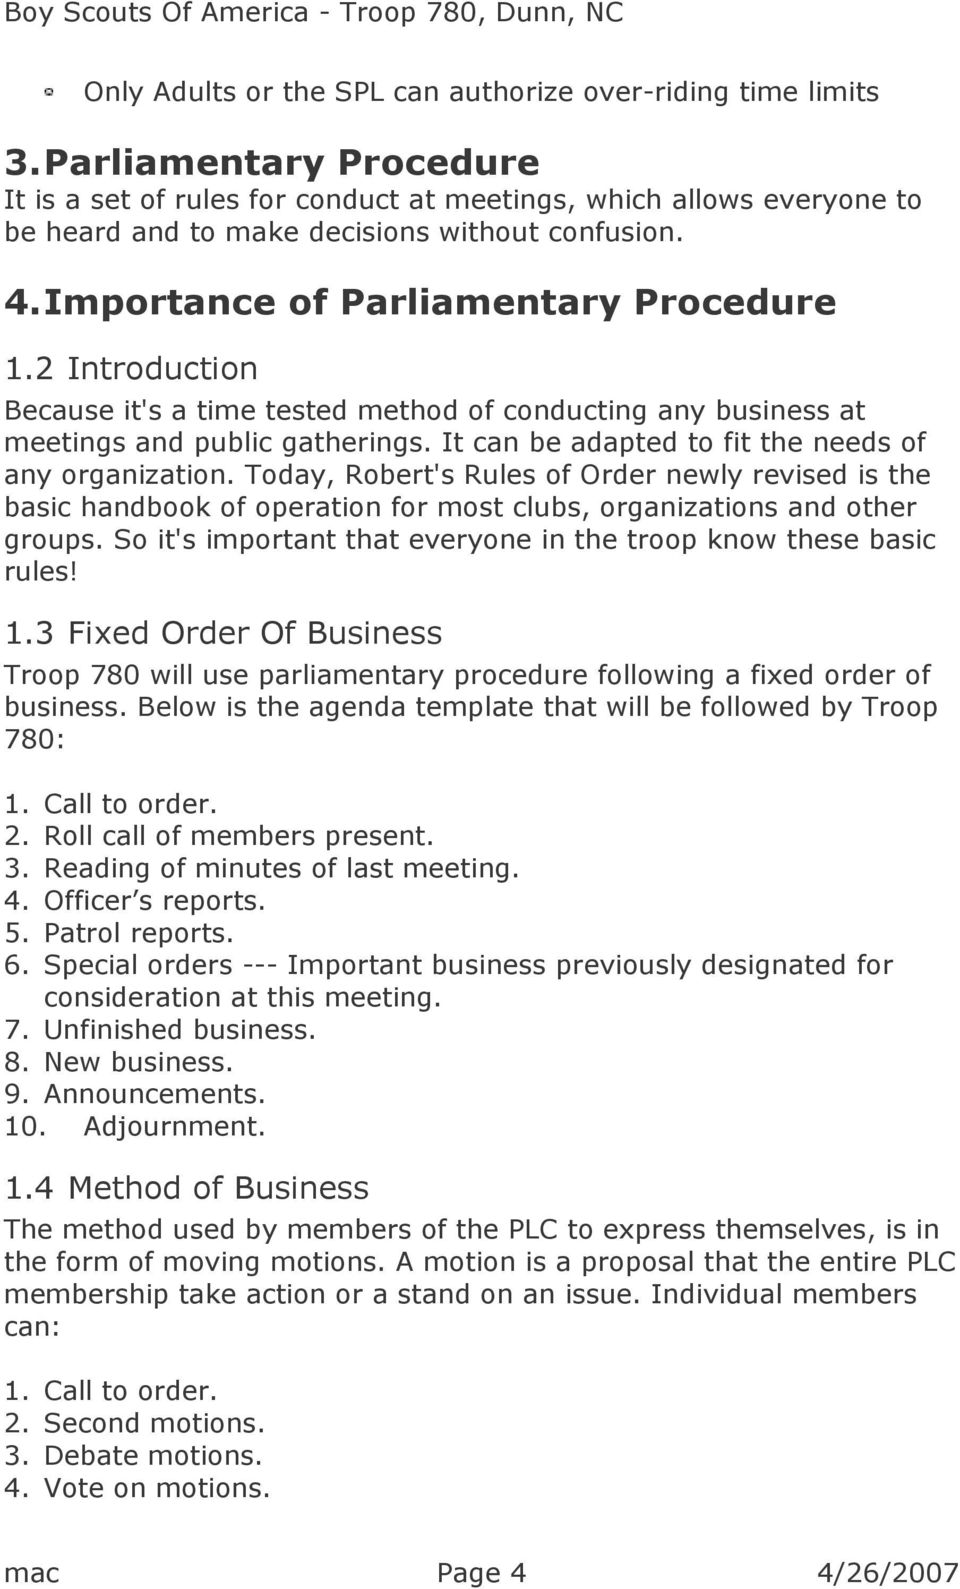 Robert's Rules Of Order Agenda Template from docplayer.net